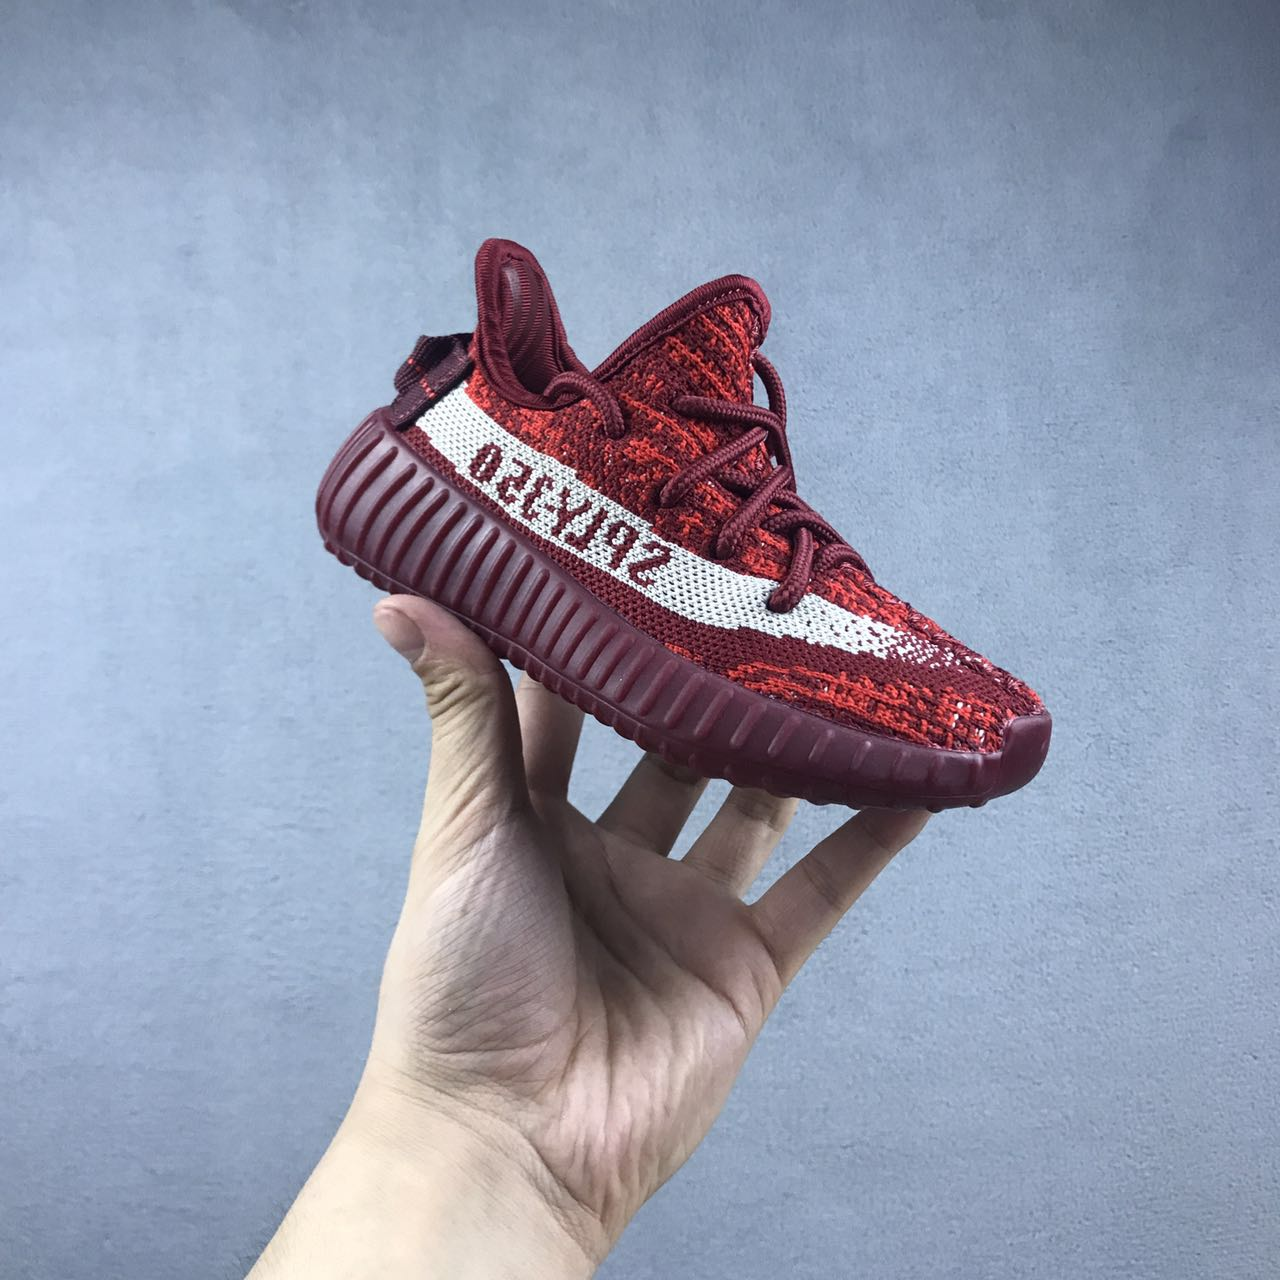 New Kids Yeezy Boost 350 red-white